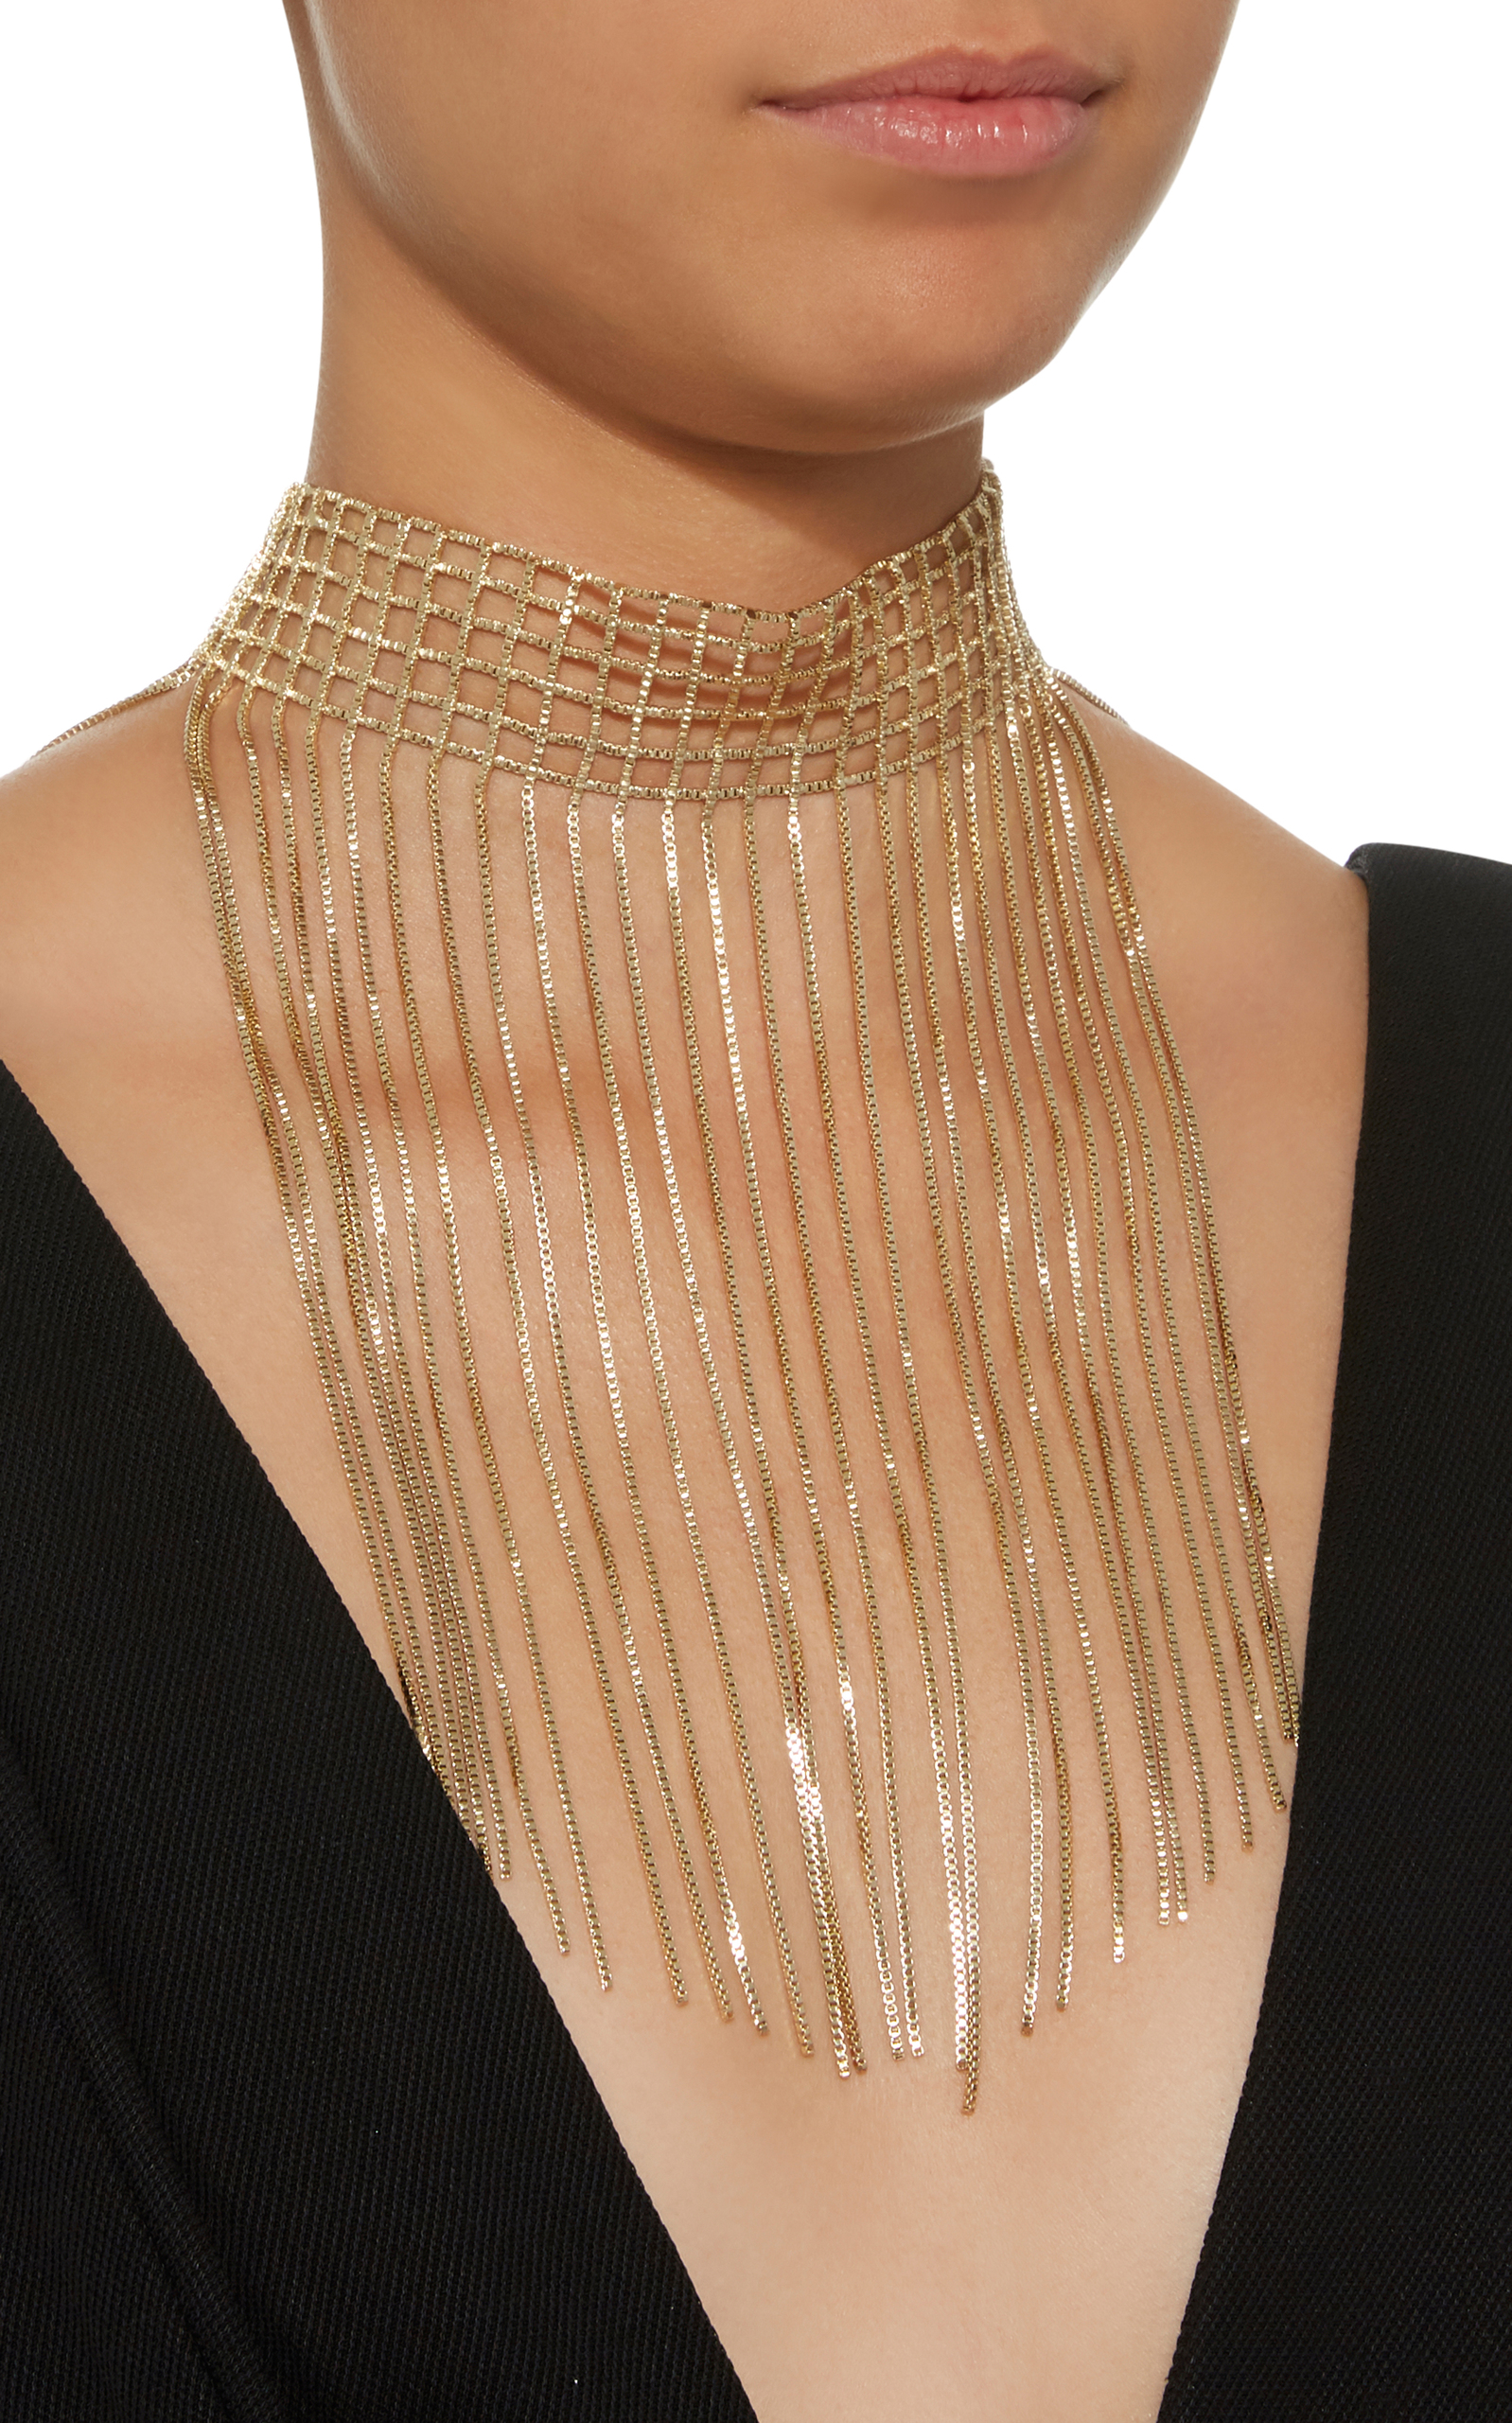 Rosantica Aquilone Fringed Gold-Tone Necklace JNGLd